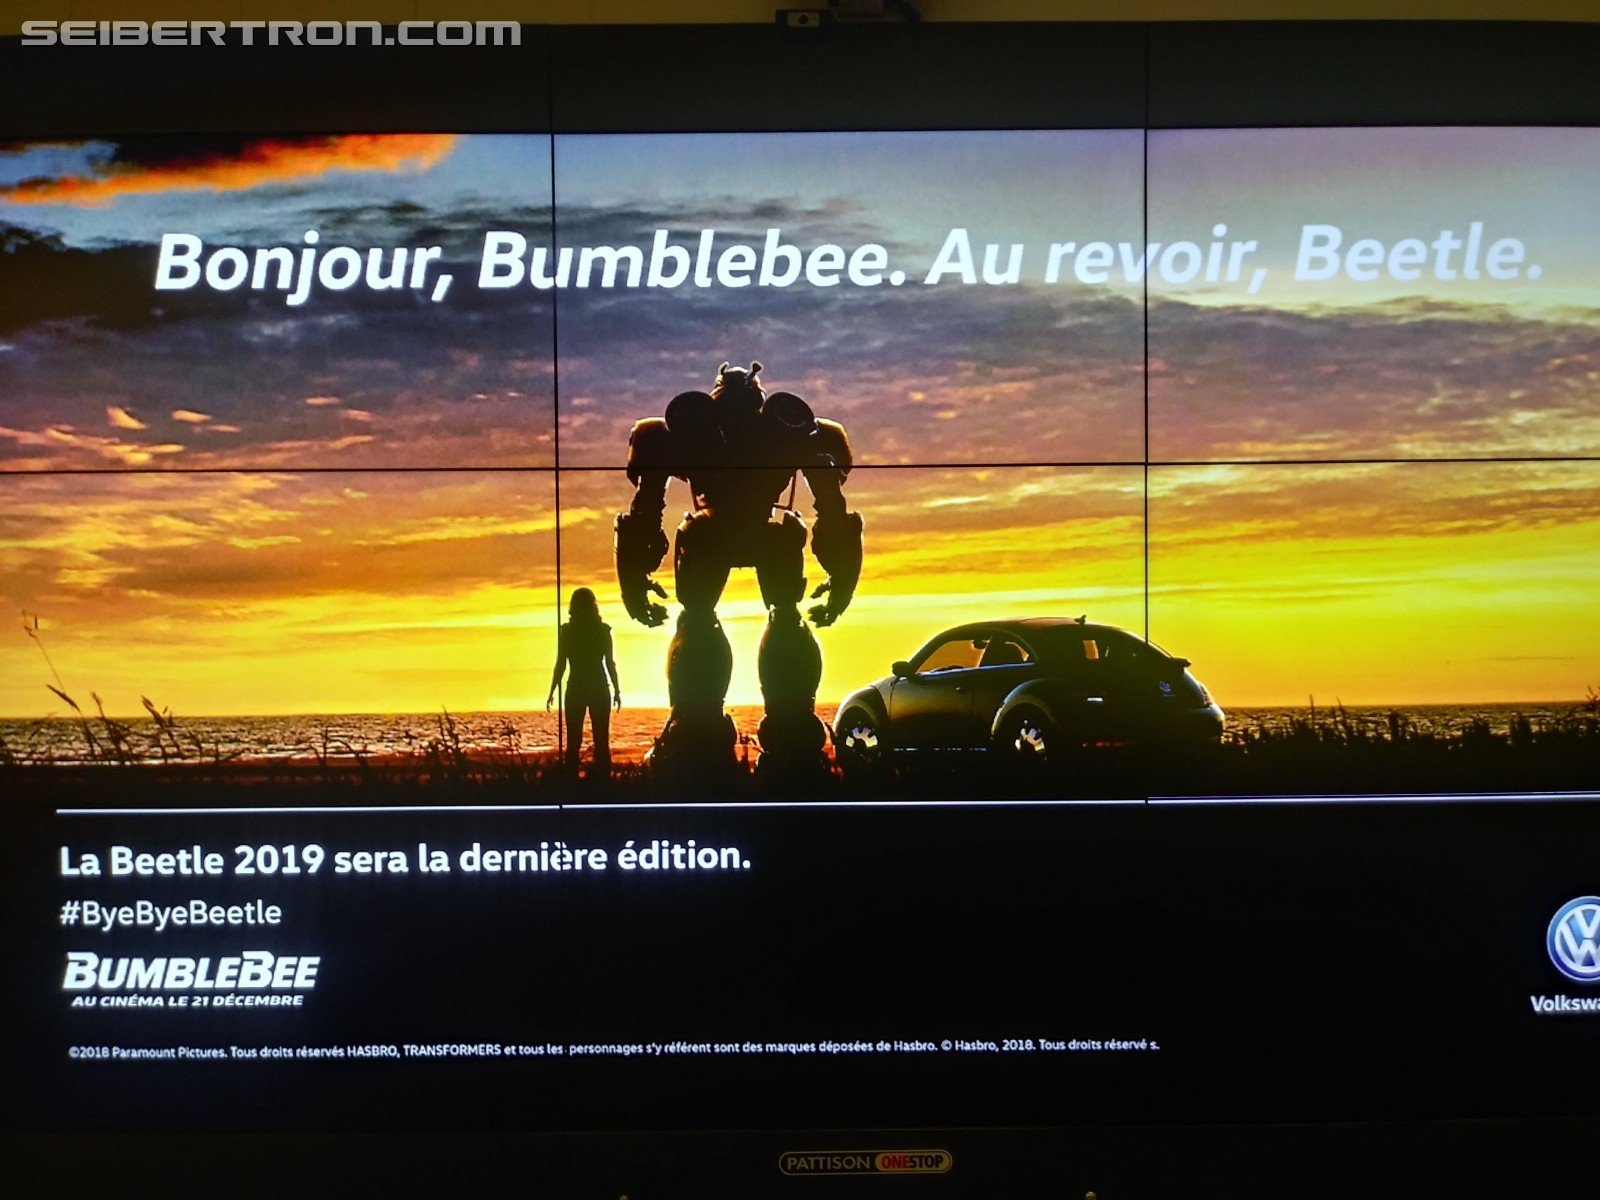 Transformers News: Bumblebee Movie Part of Goodbye Beetle Campaign from Volkswagen